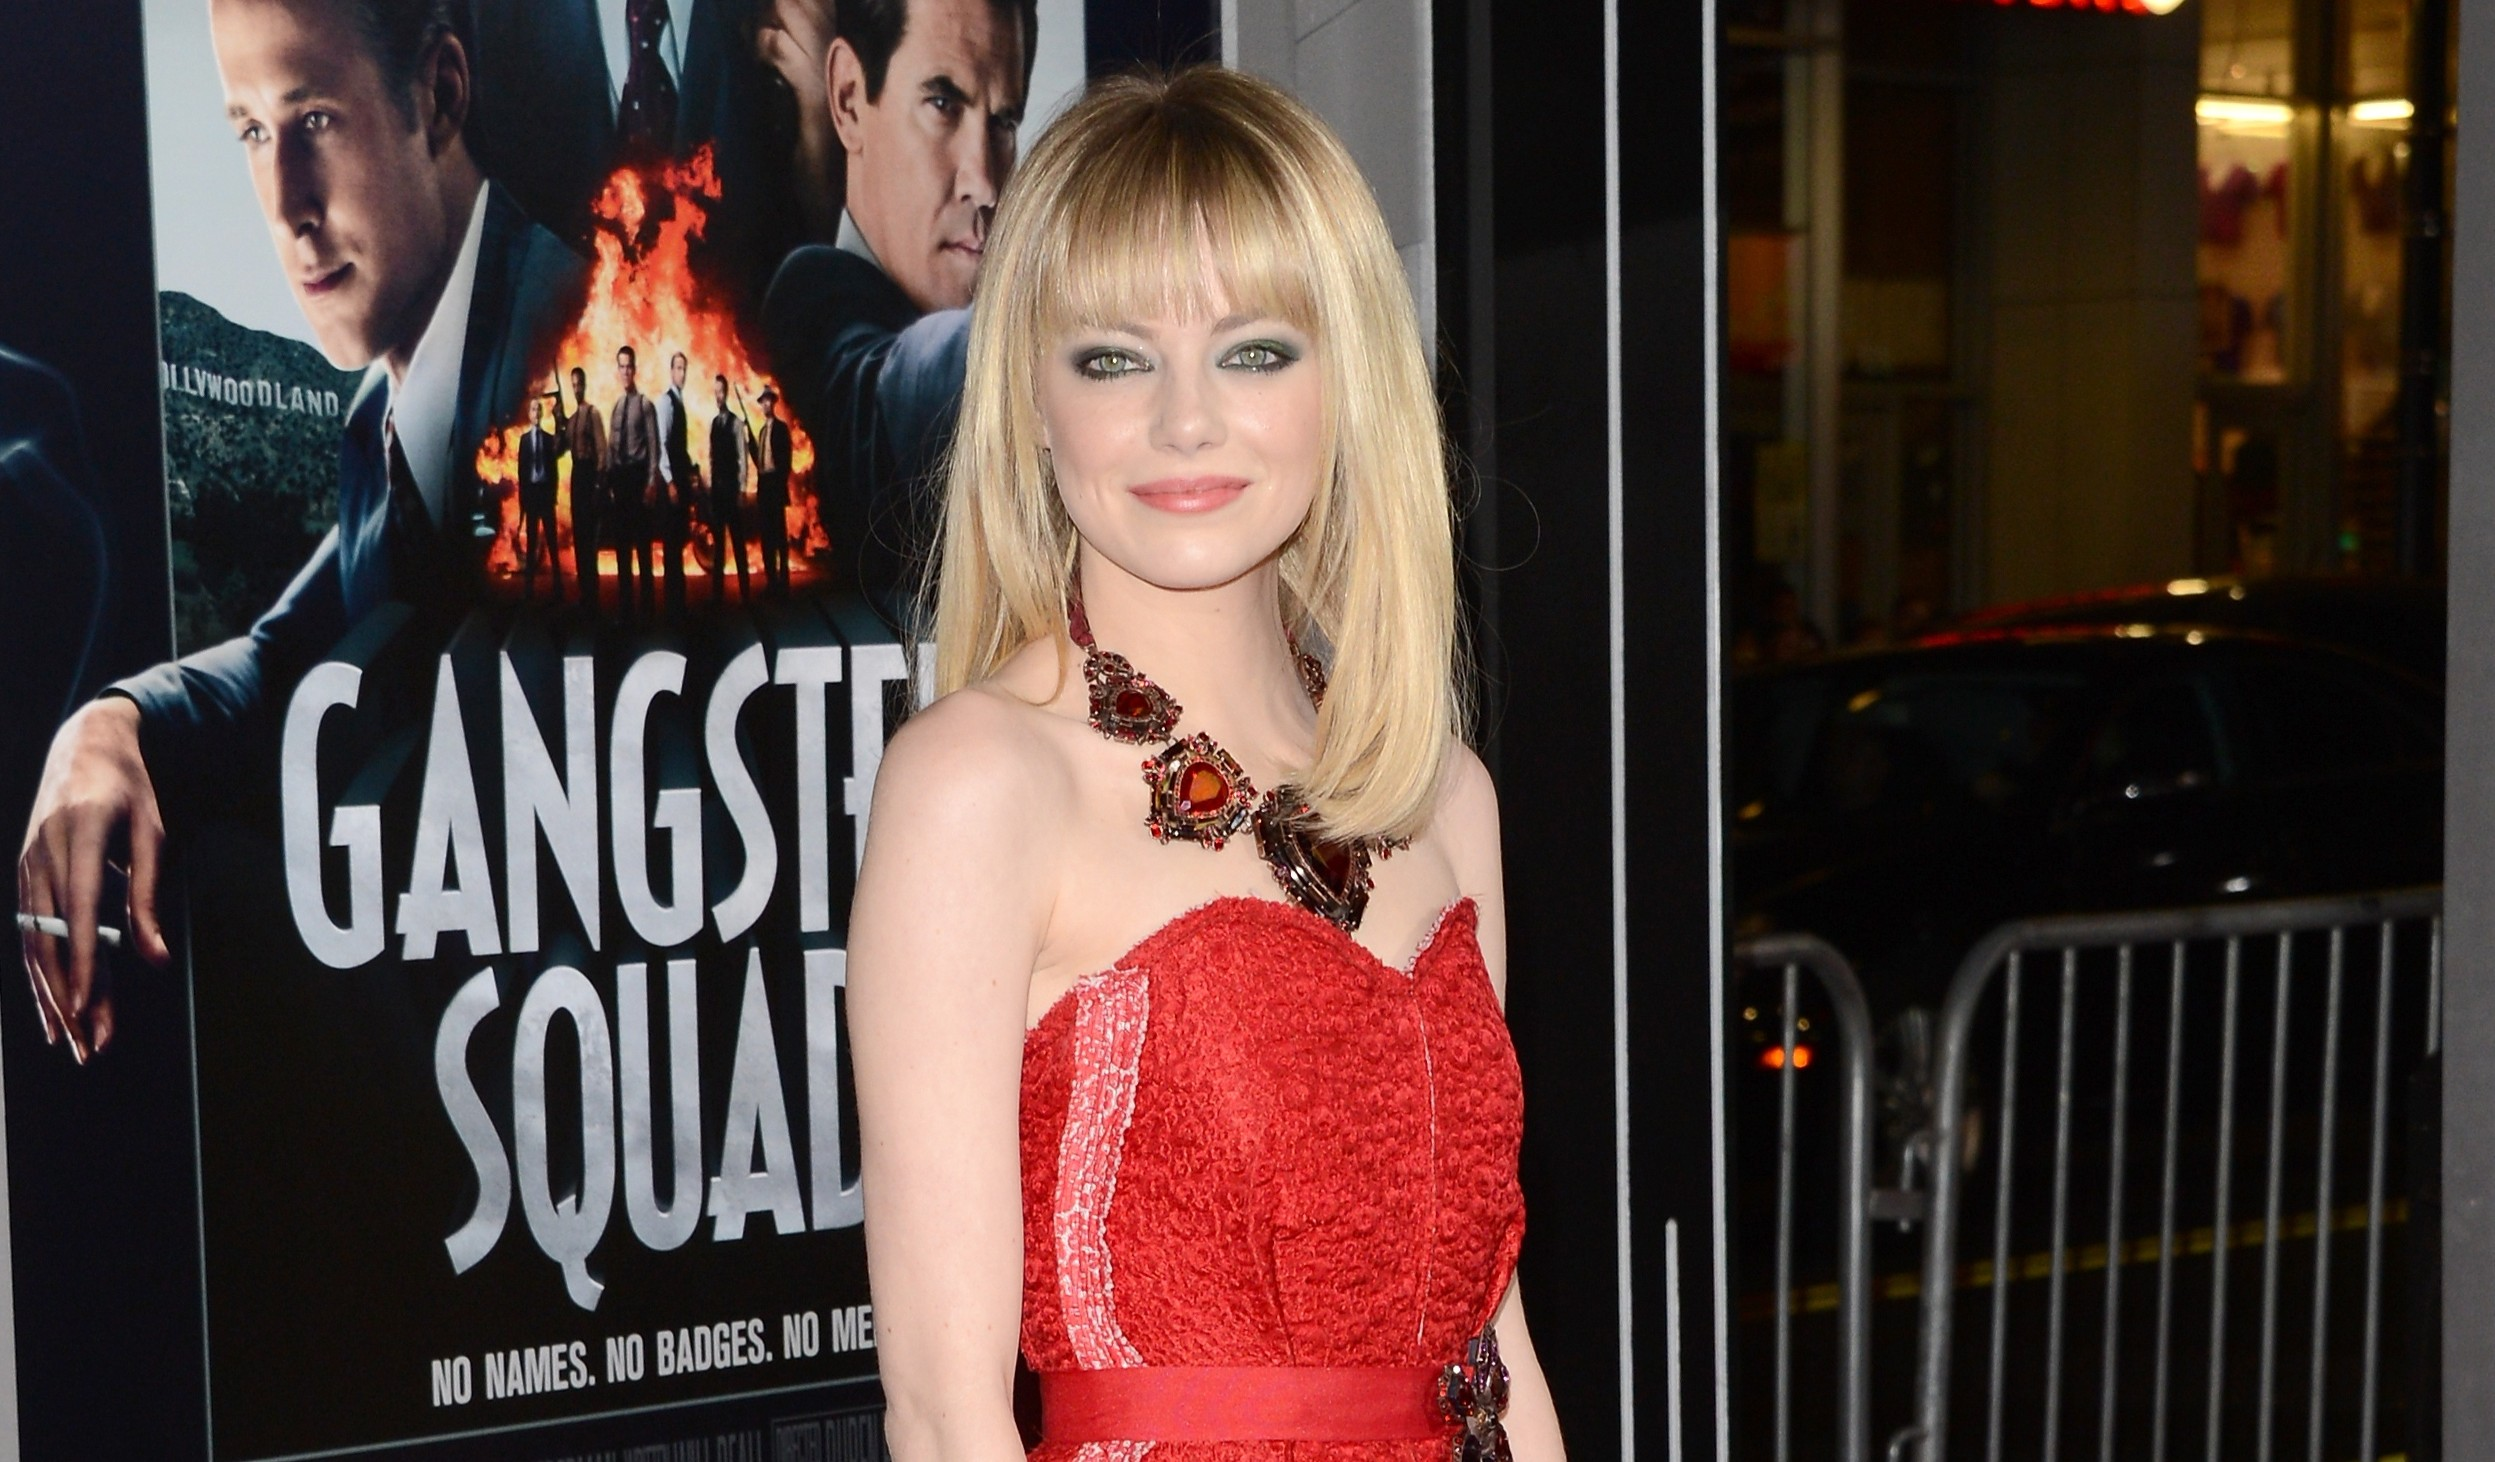 Jonah Hill and Emma Stone offered roles in Ghostbusters 3?